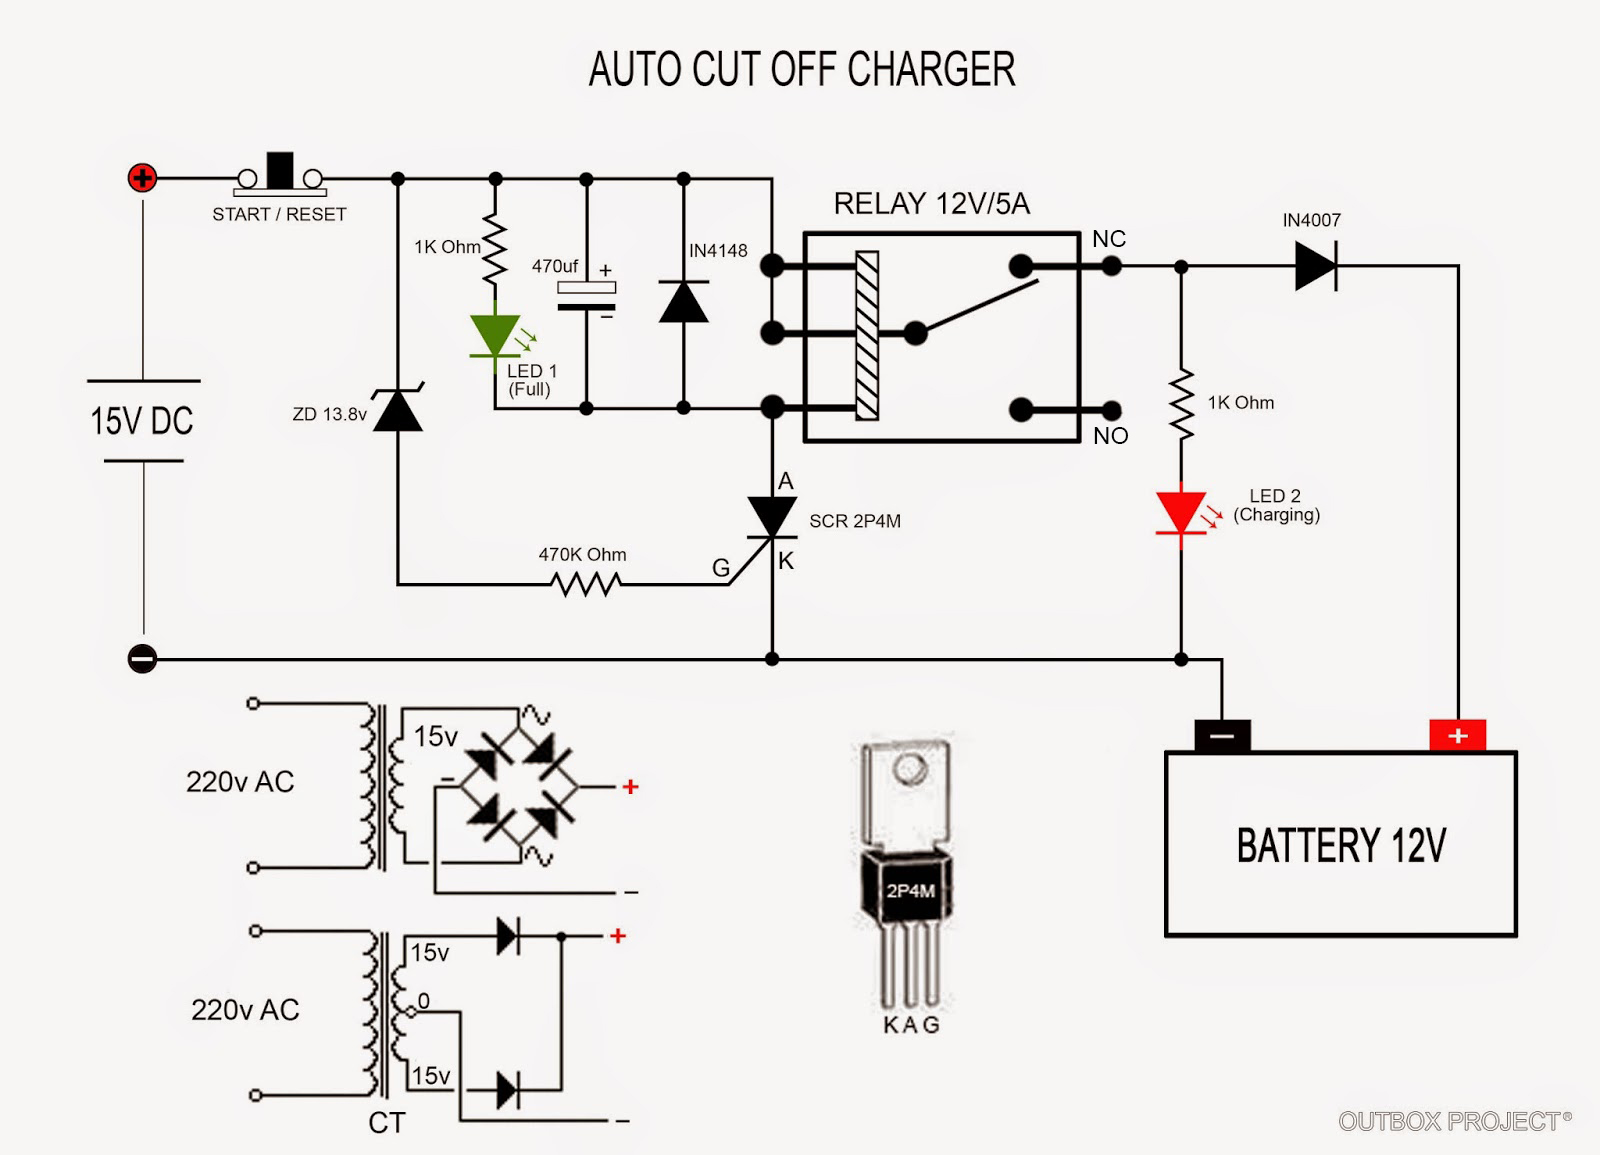 Automatic 12v Car Battery Charger Circuit Diagram 2006 Ford F150 Radio Wiring Outbox Project Membuat Aki Otomatis Auto Cut